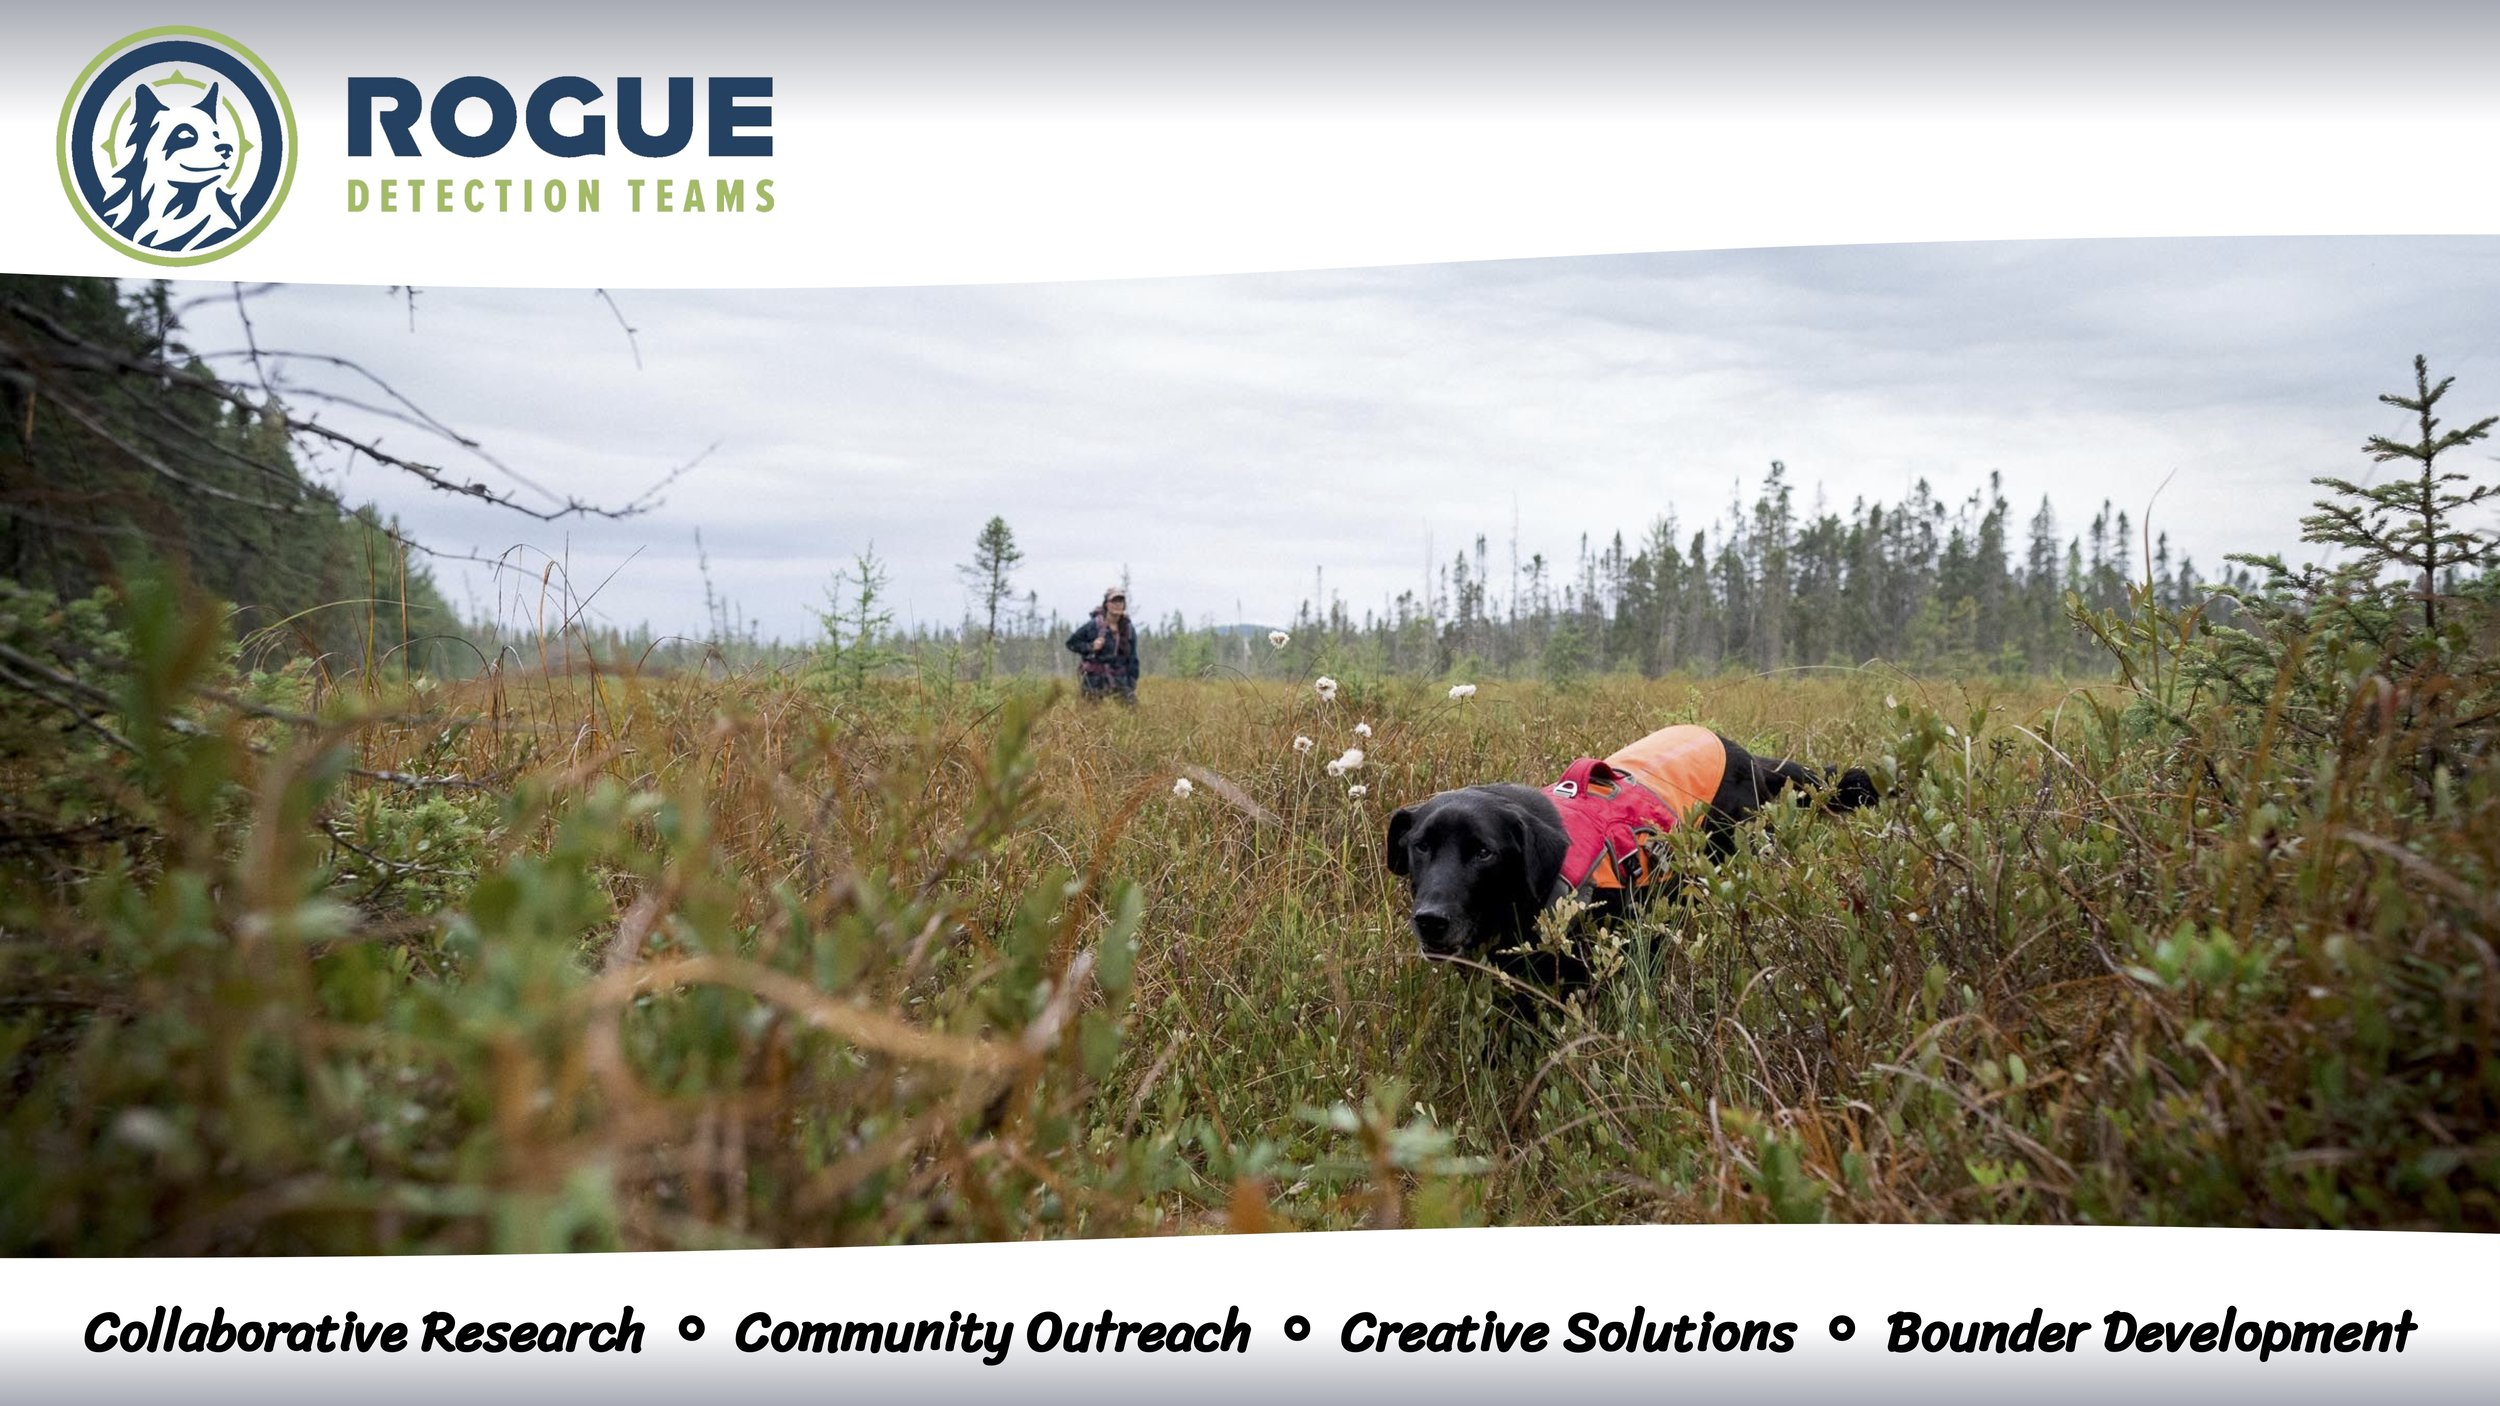 The Rogue eBook - Our eBook has detailed information on the services we provide, in a downloadable format easy to share. Please feel free to download, email, print, and share in any way you see fit!